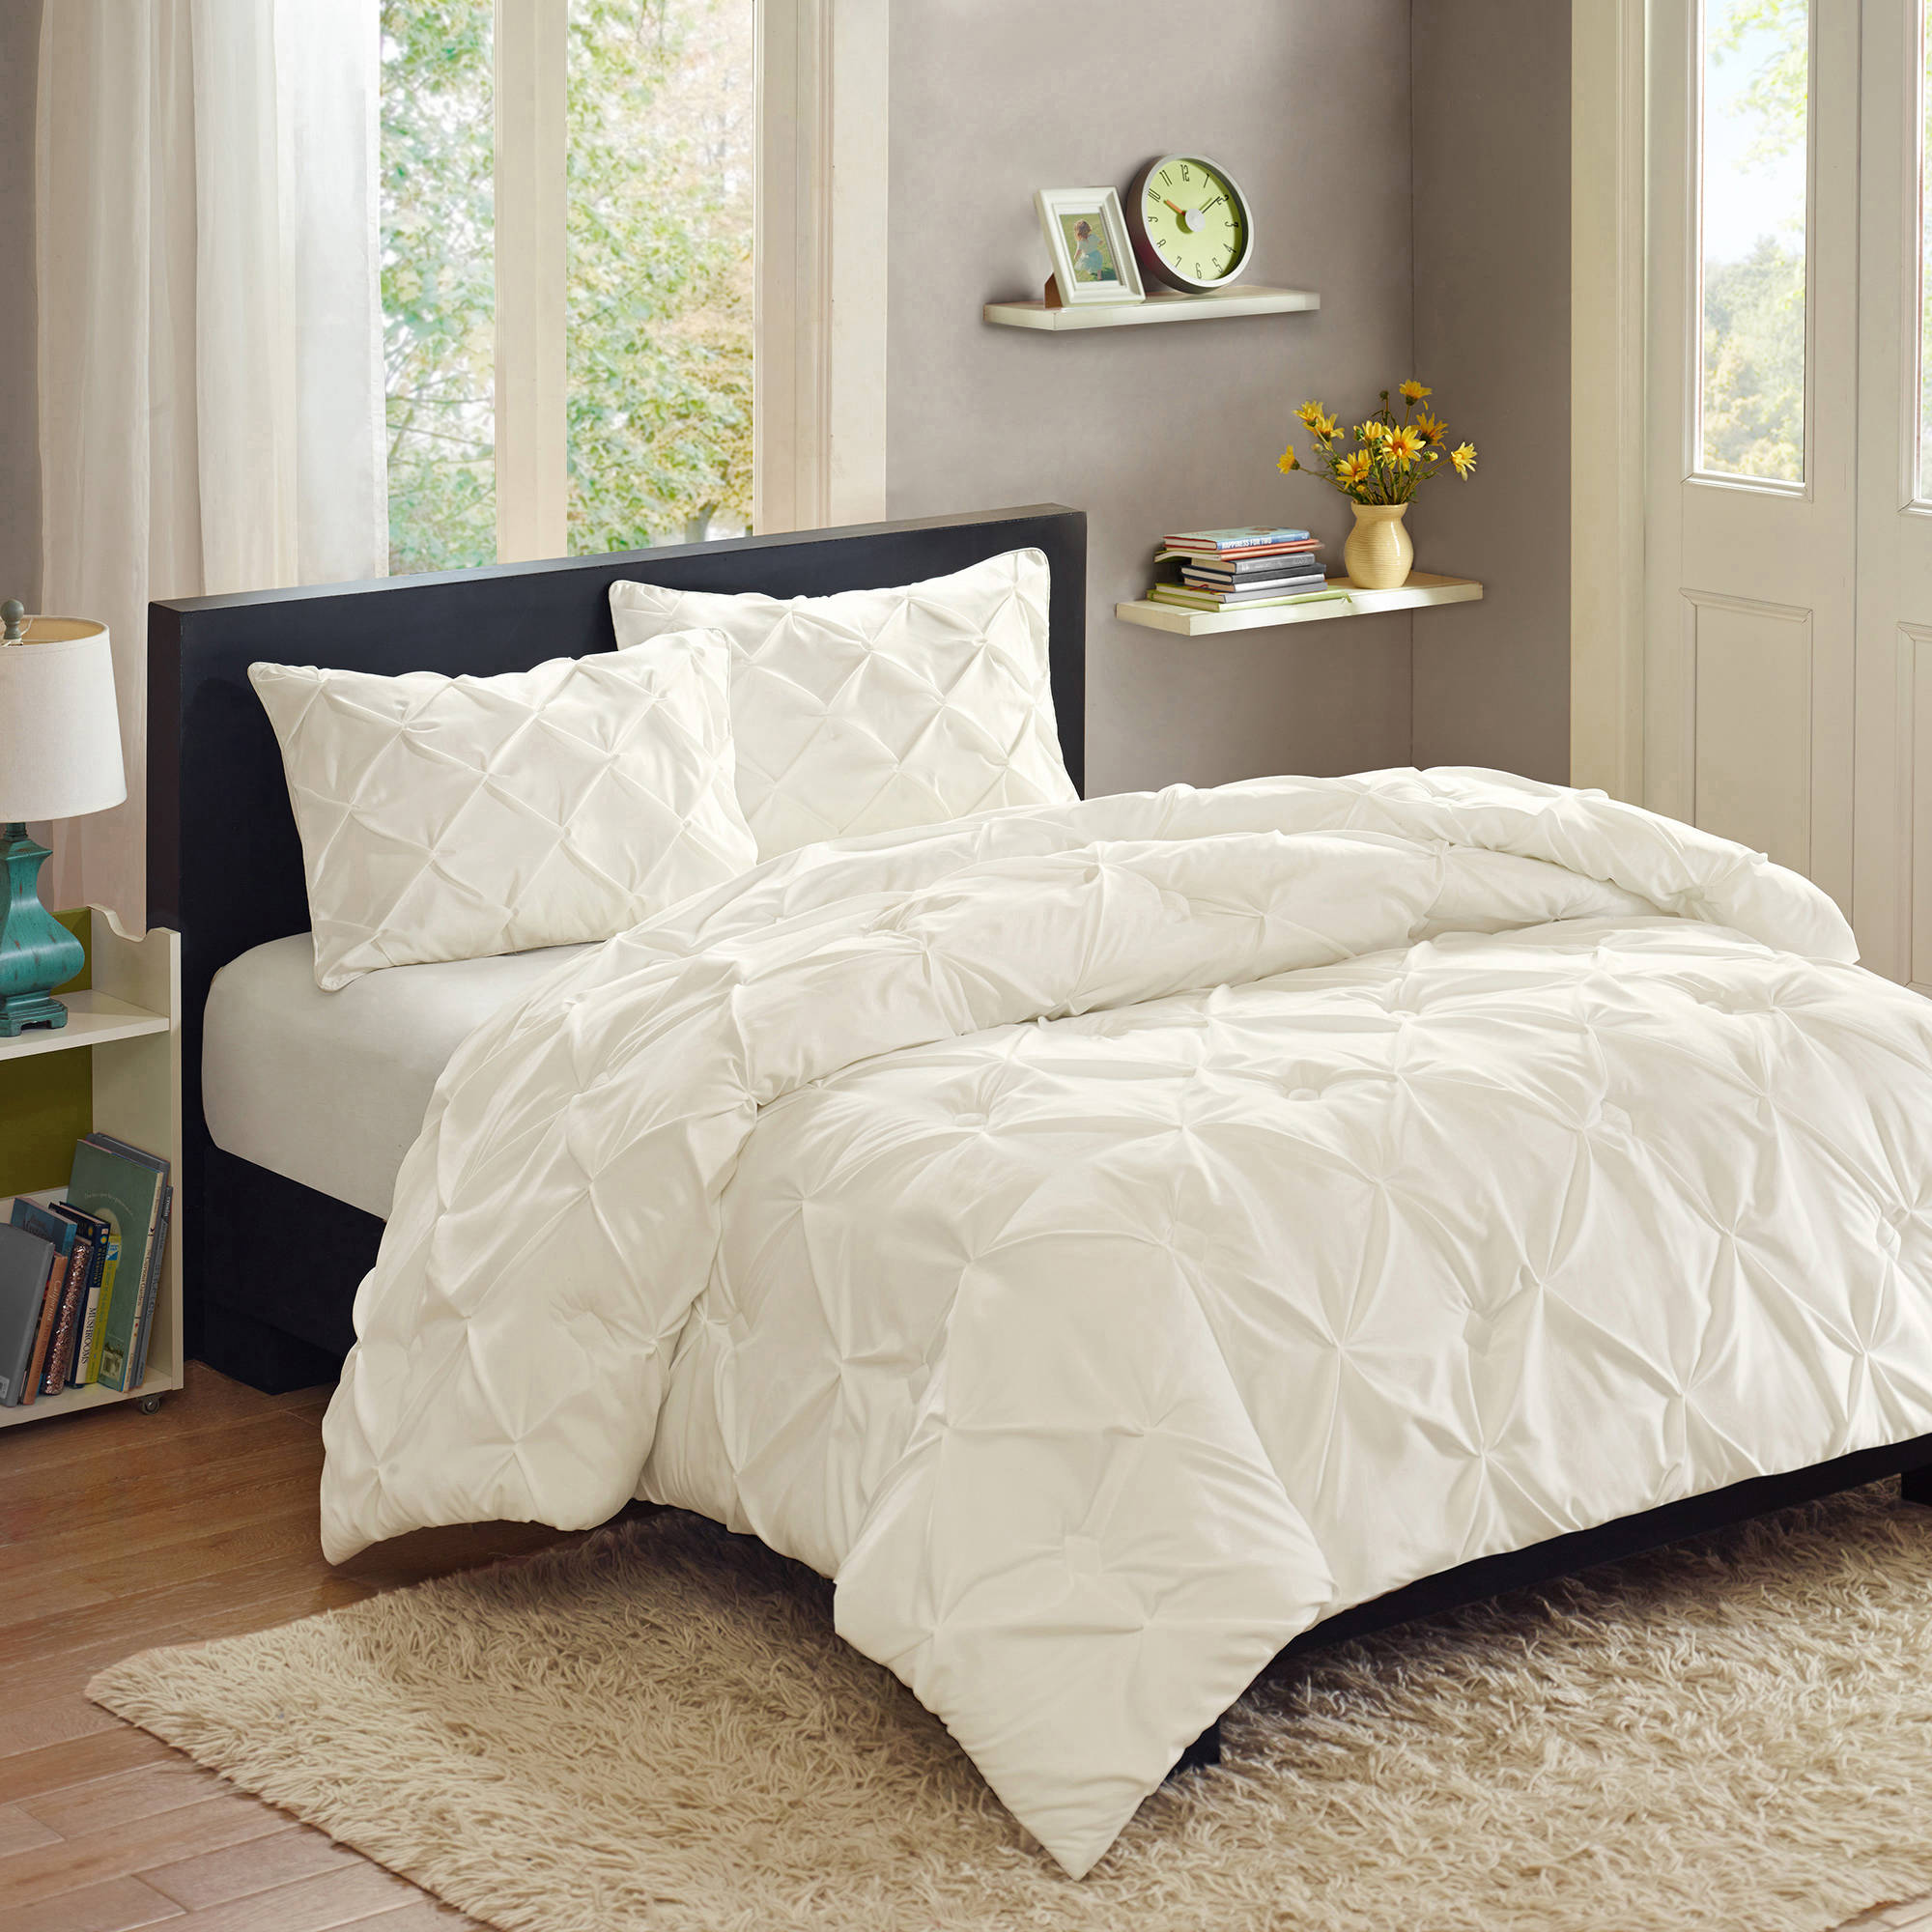 Bedding Sets Walmartcom